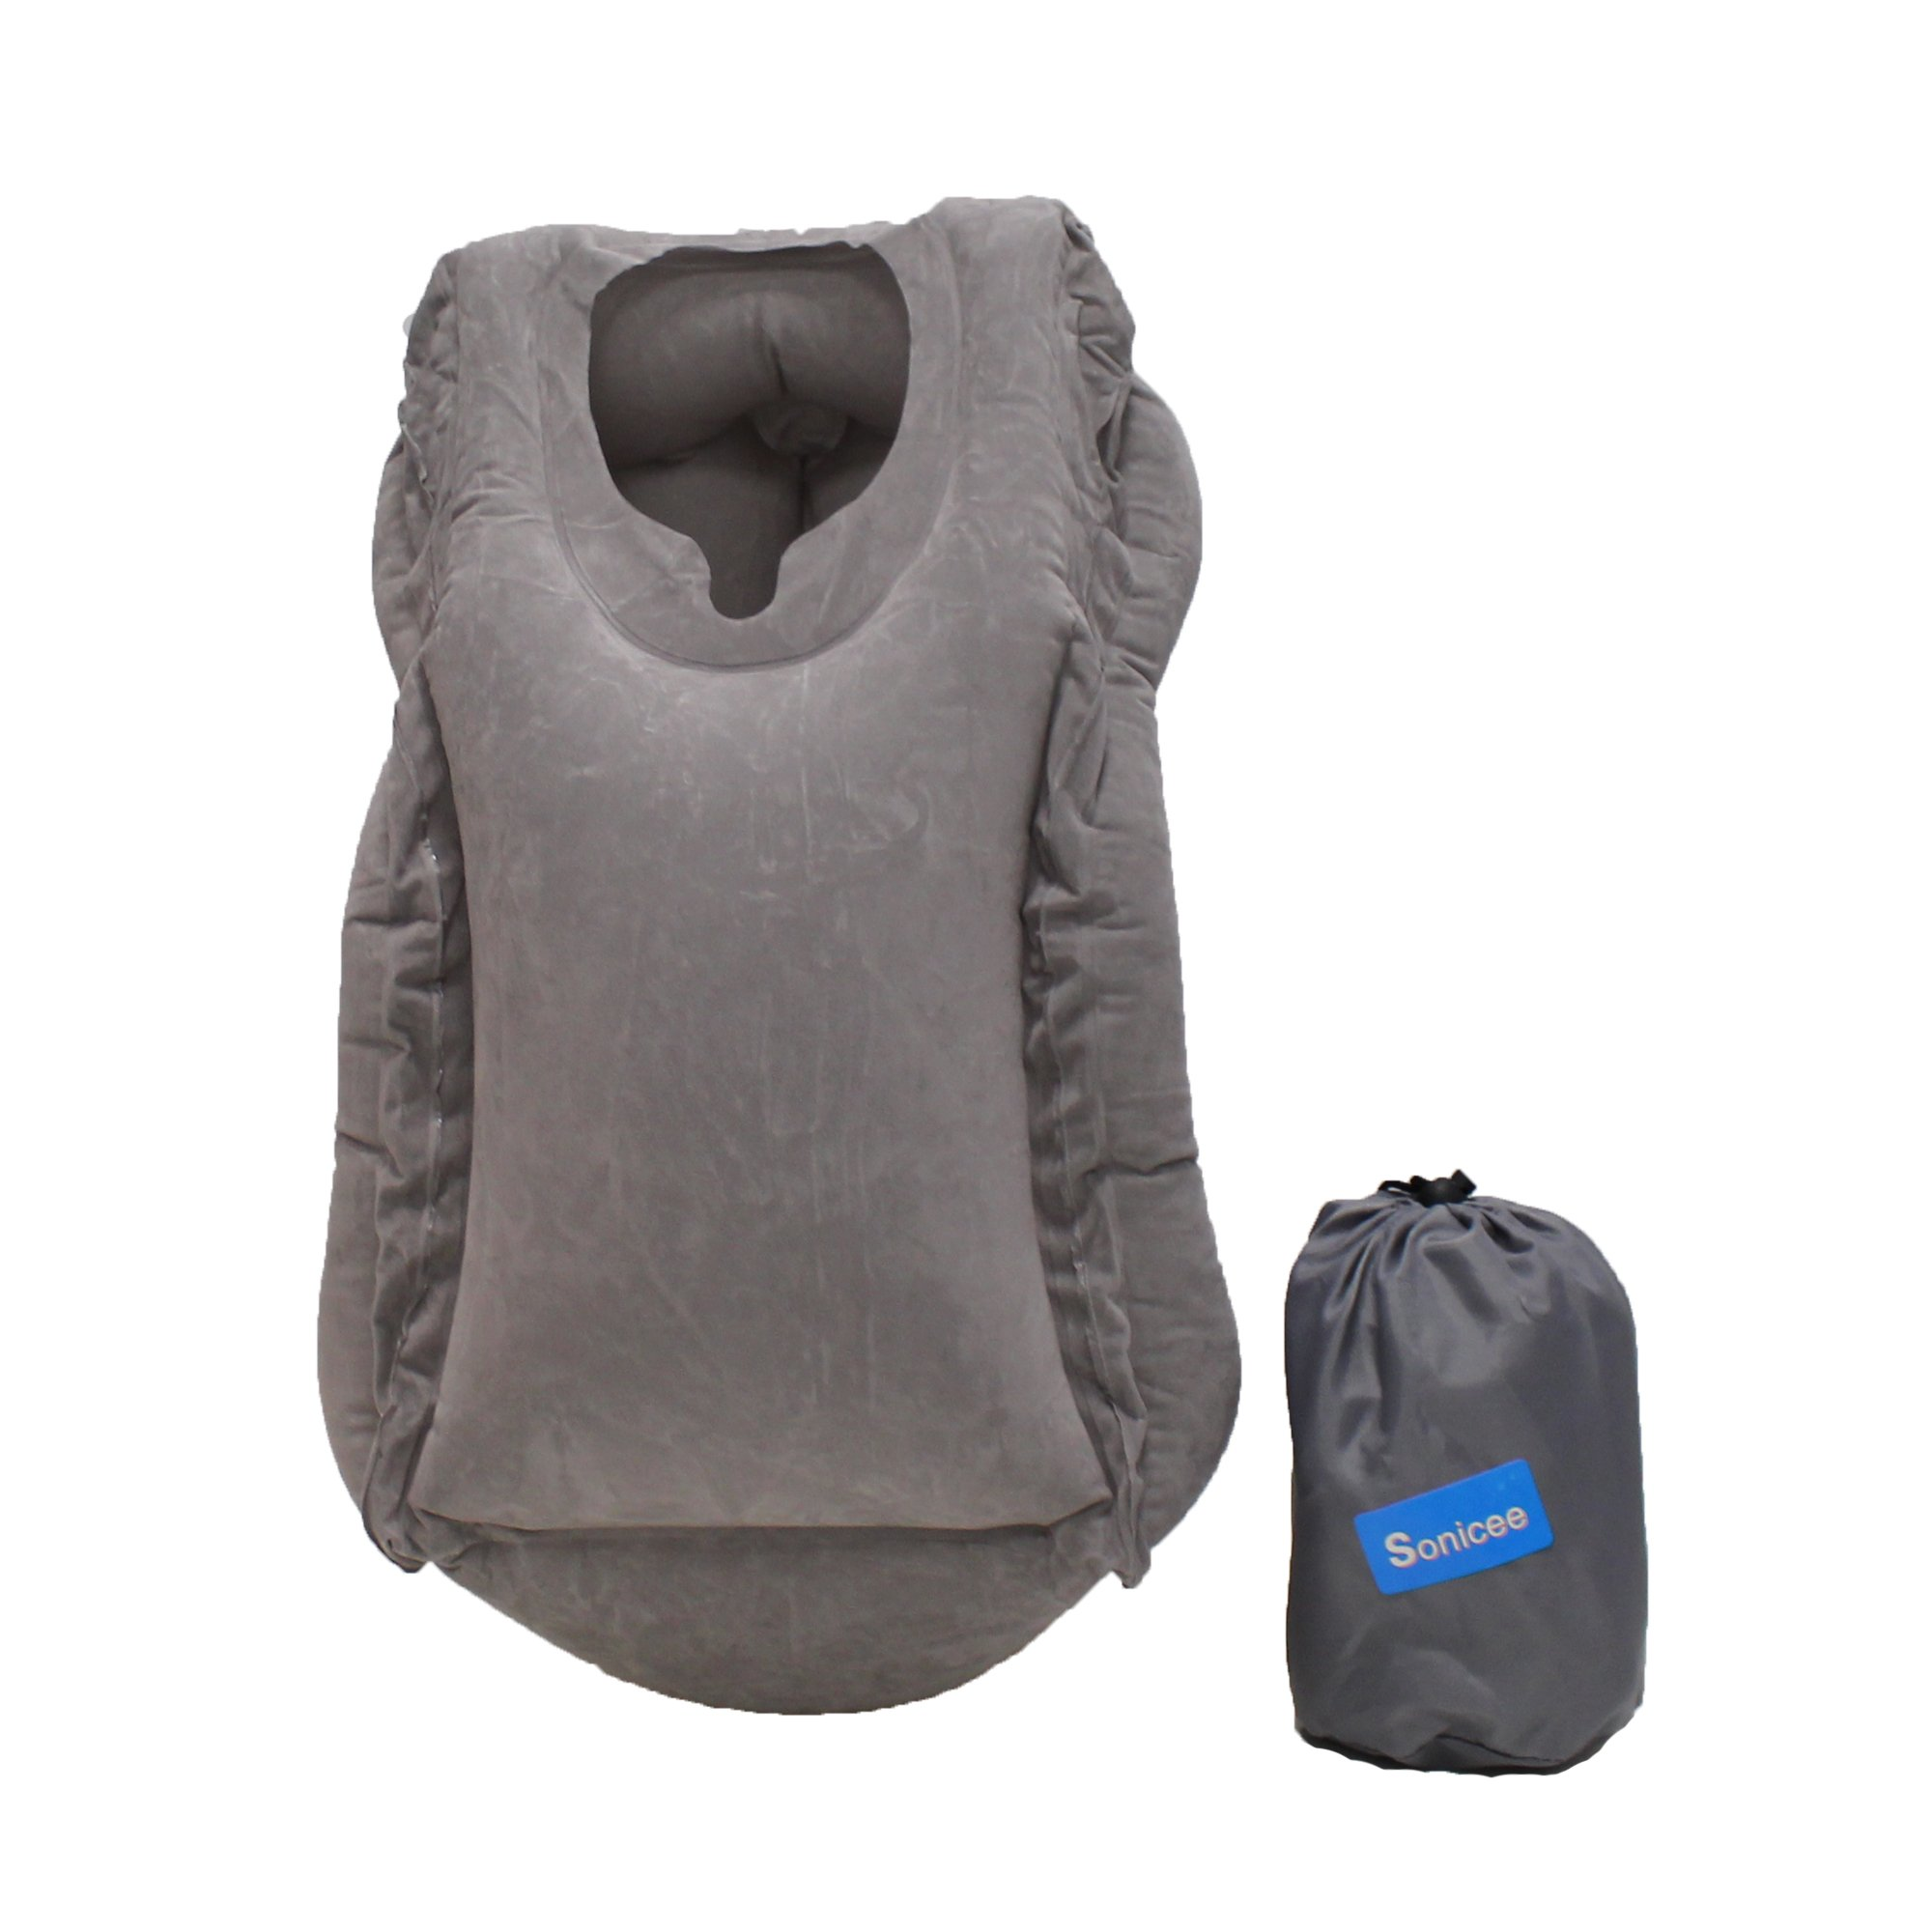 Sonicee Inflatable Air Cushion Multifunctional Travel Pillow Neck Support Nap Pillow for Full Body and Head (Grey)